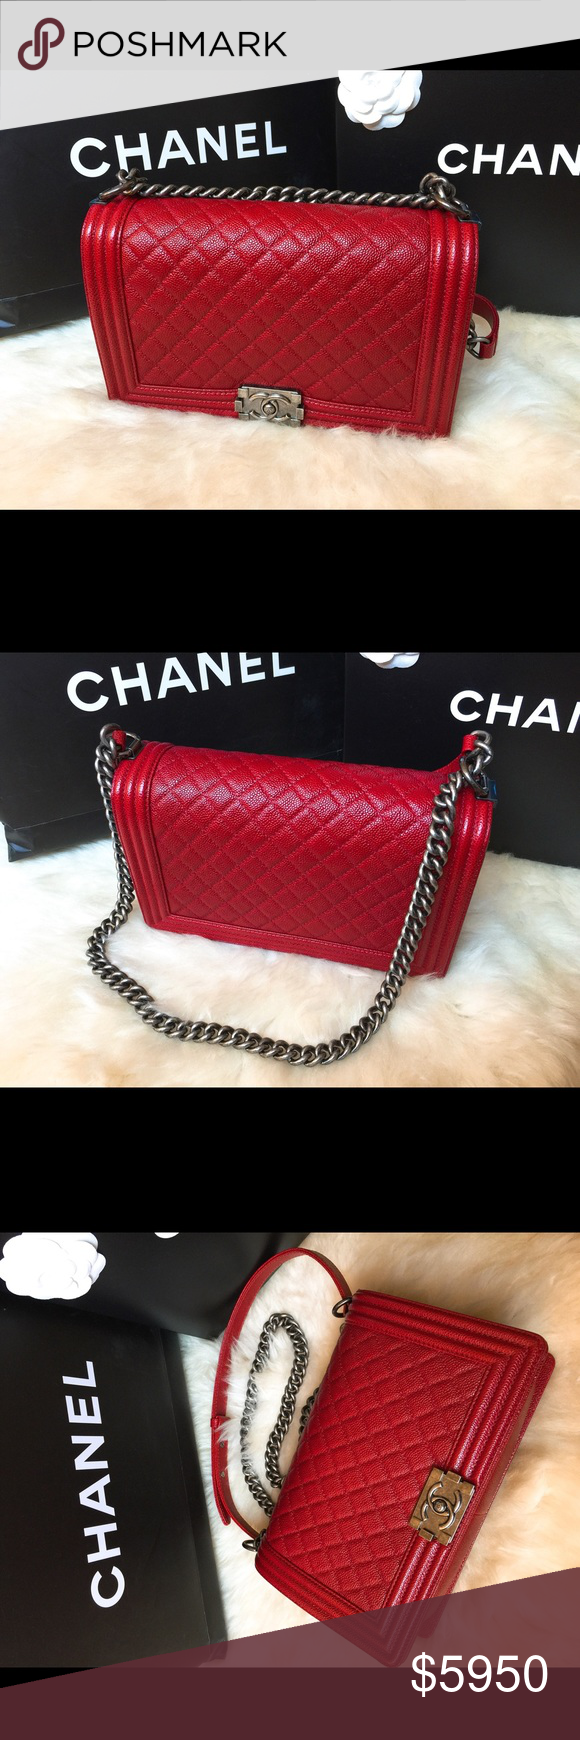 078f9e6d3783 Chanel Le Boy 28 in Red Brand new in the box with original shopping paper  bag, never been worn. Le Boy New Medium in Red, with grained calfskin and  ...